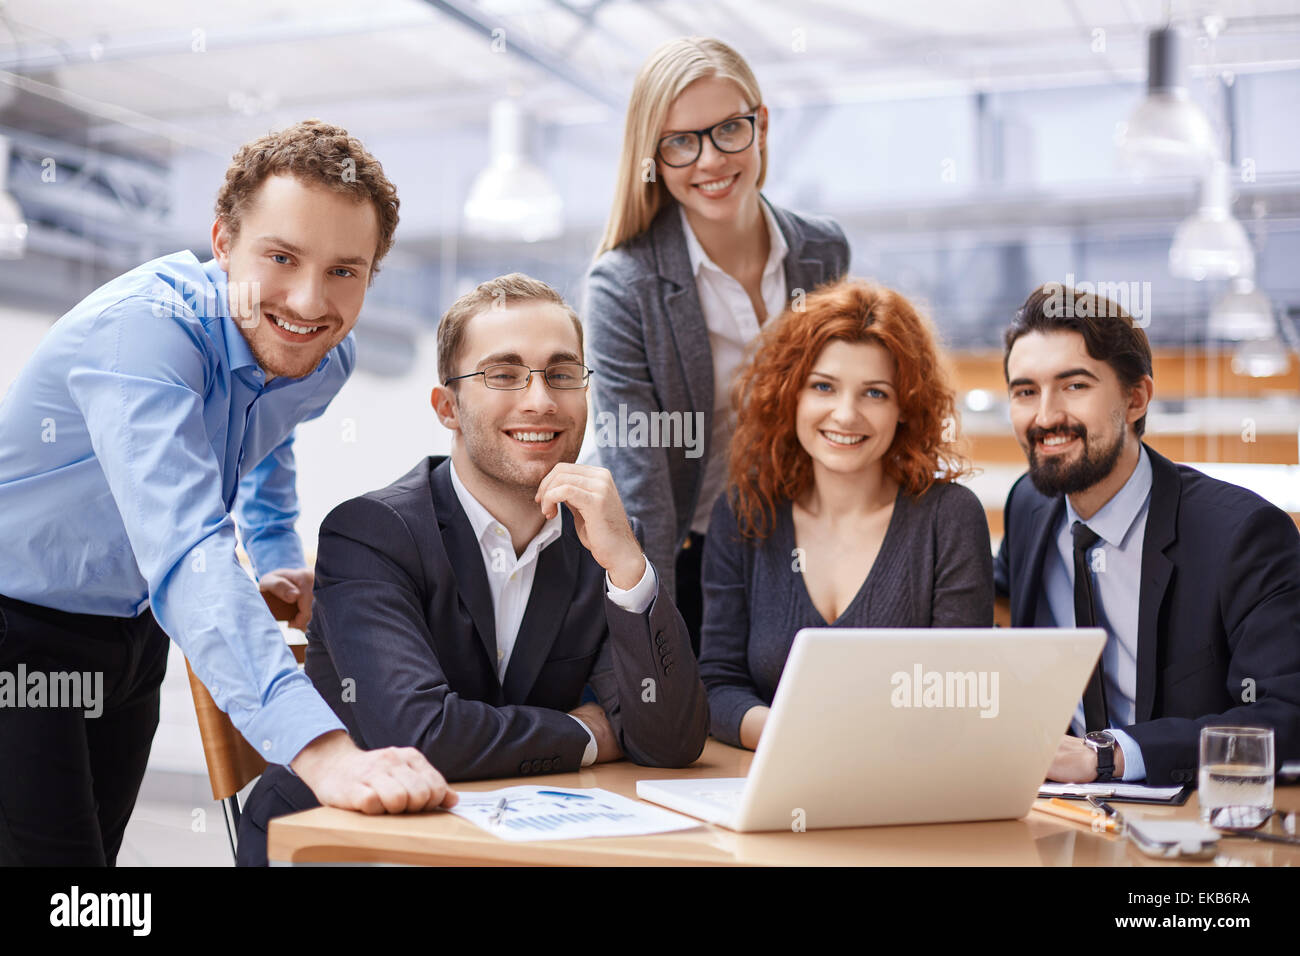 Happy business partners looking at camera with smiles - Stock Image